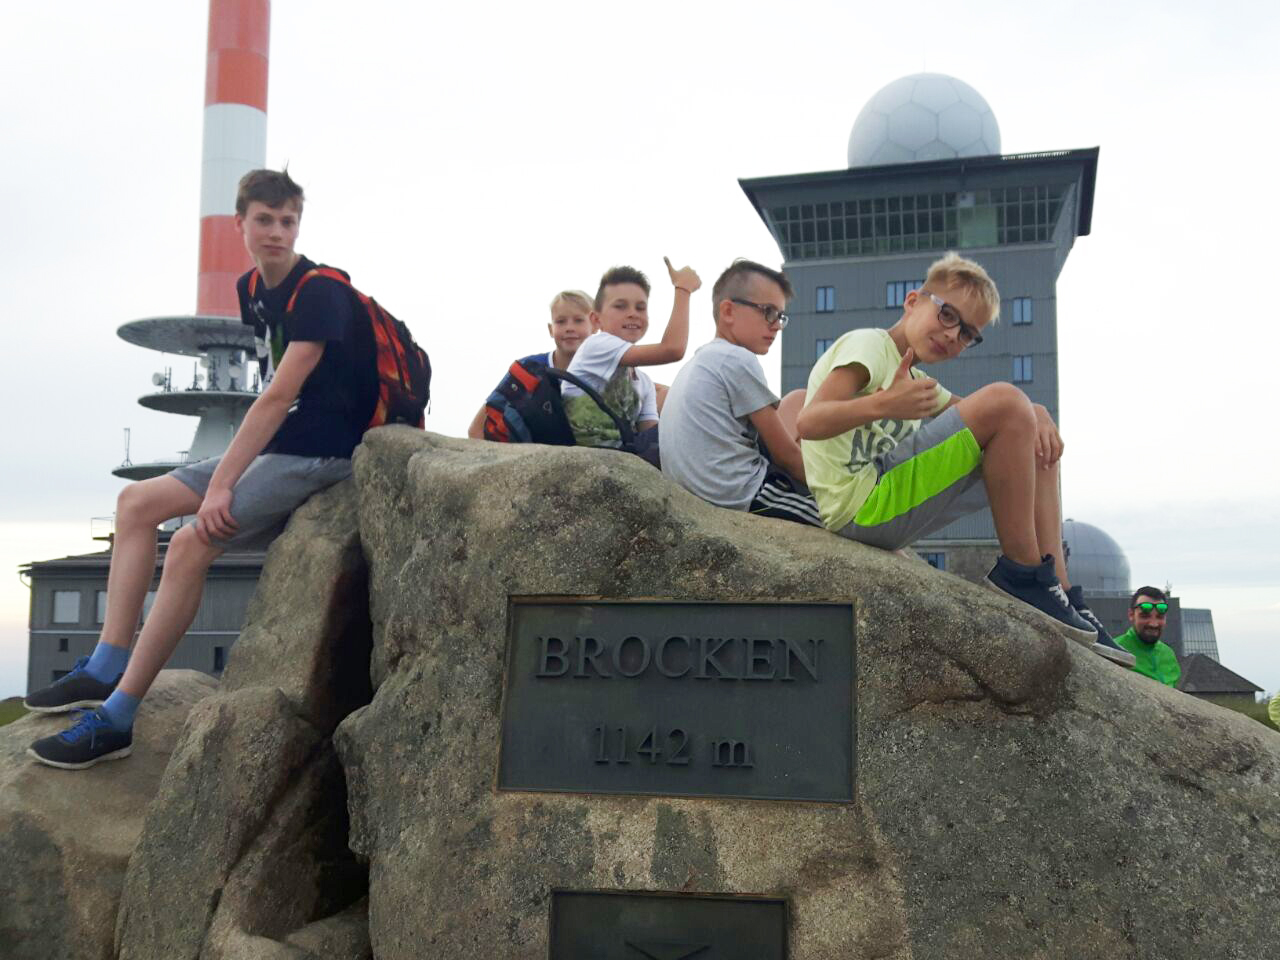 Ferienpass Aktion auf dem Brocken